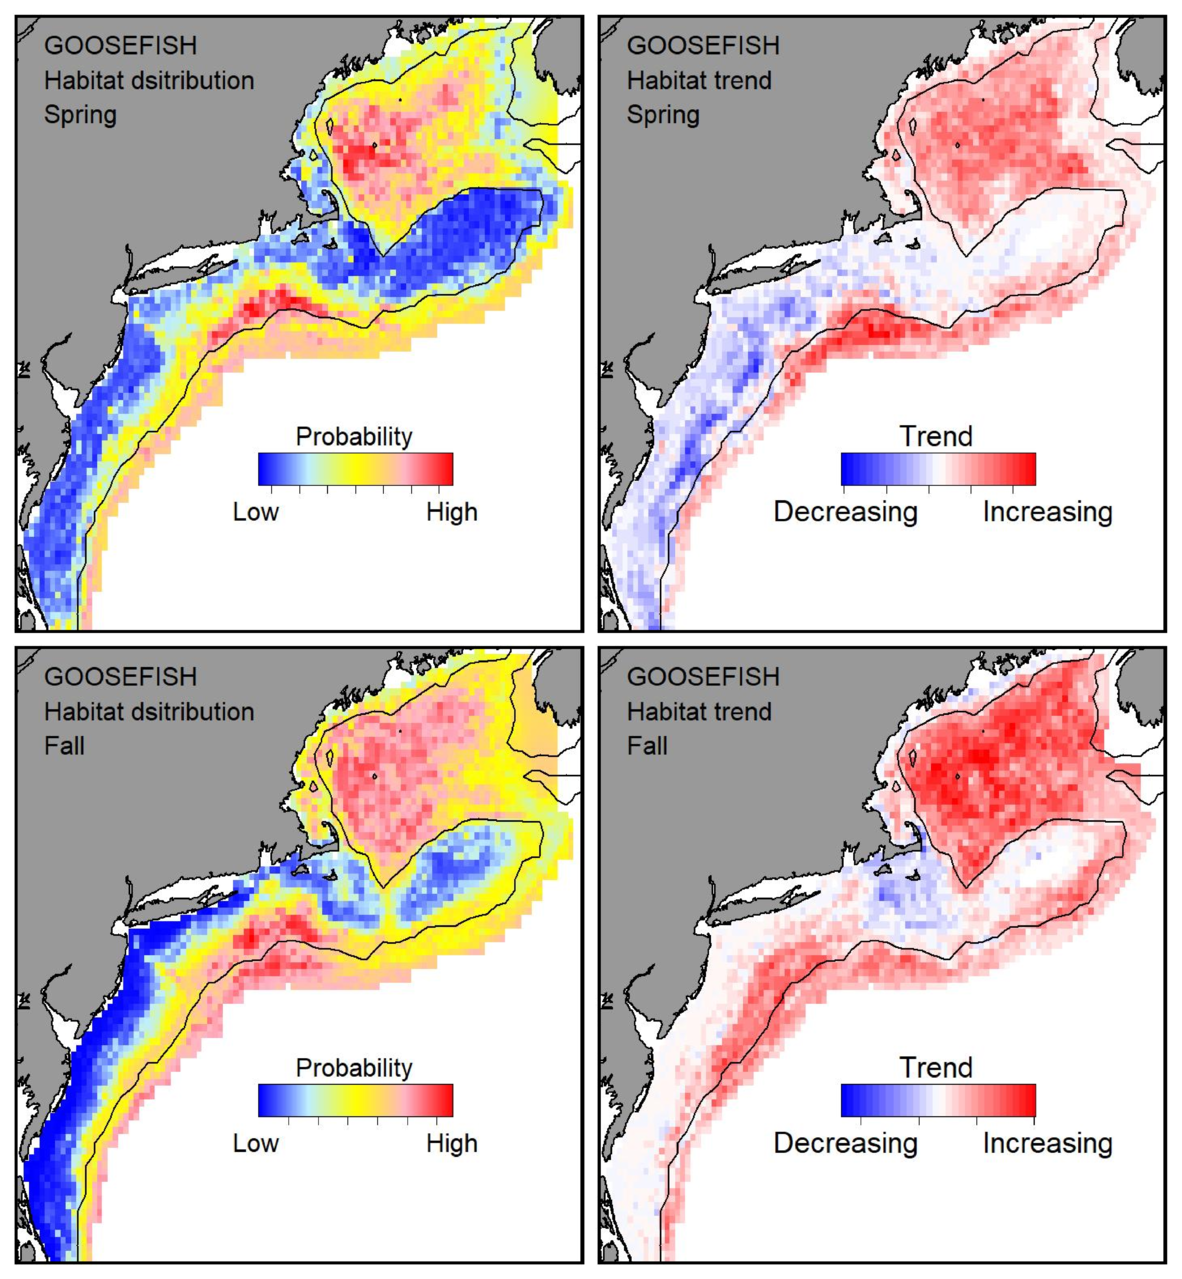 Probable habitat distribution for goosefish showing the highest concentration and increasing trend in the Gulf of Maine during the spring. Bottom row: Probable habitat distribution for goosefish showing the highest concentration and increasing trend in the Gulf of Maine during the fall.